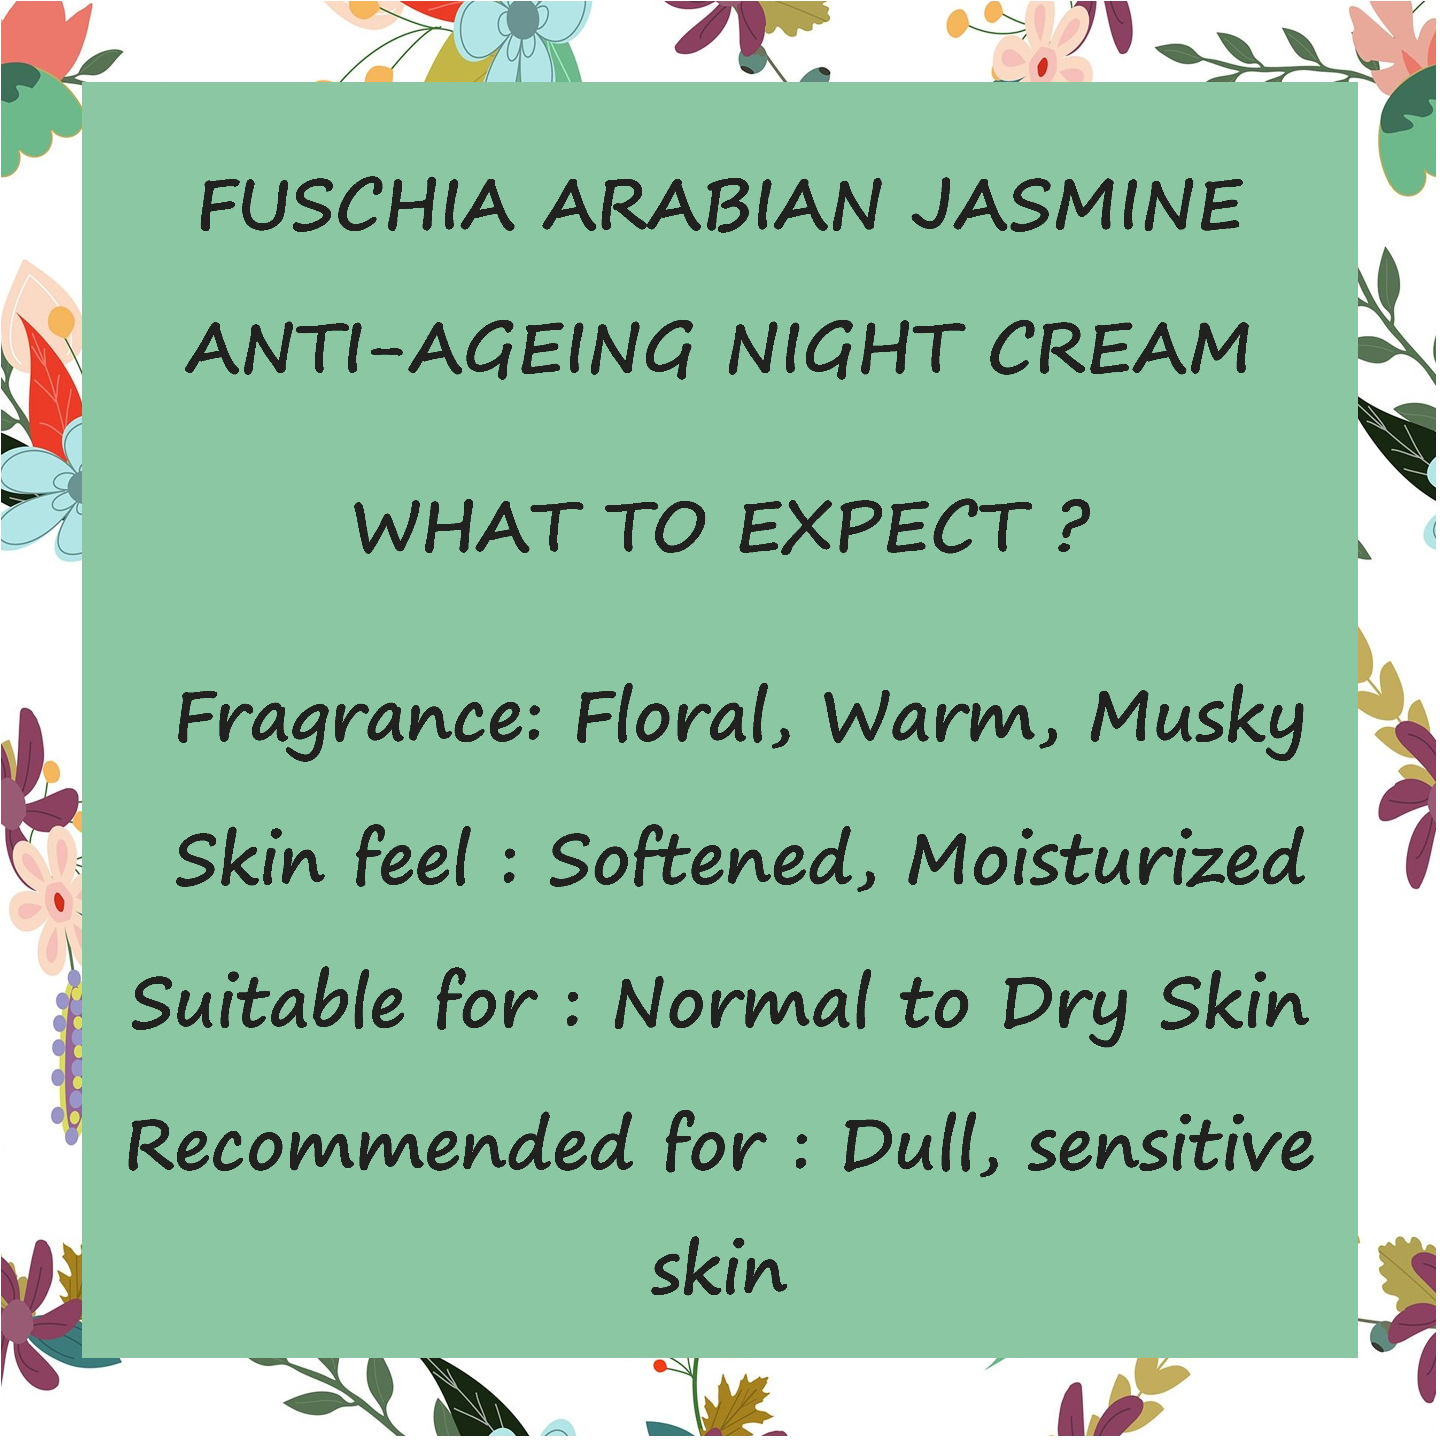 Fuschia - Arabian Jasmine  Anti-ageing  Night  Cream - 10g